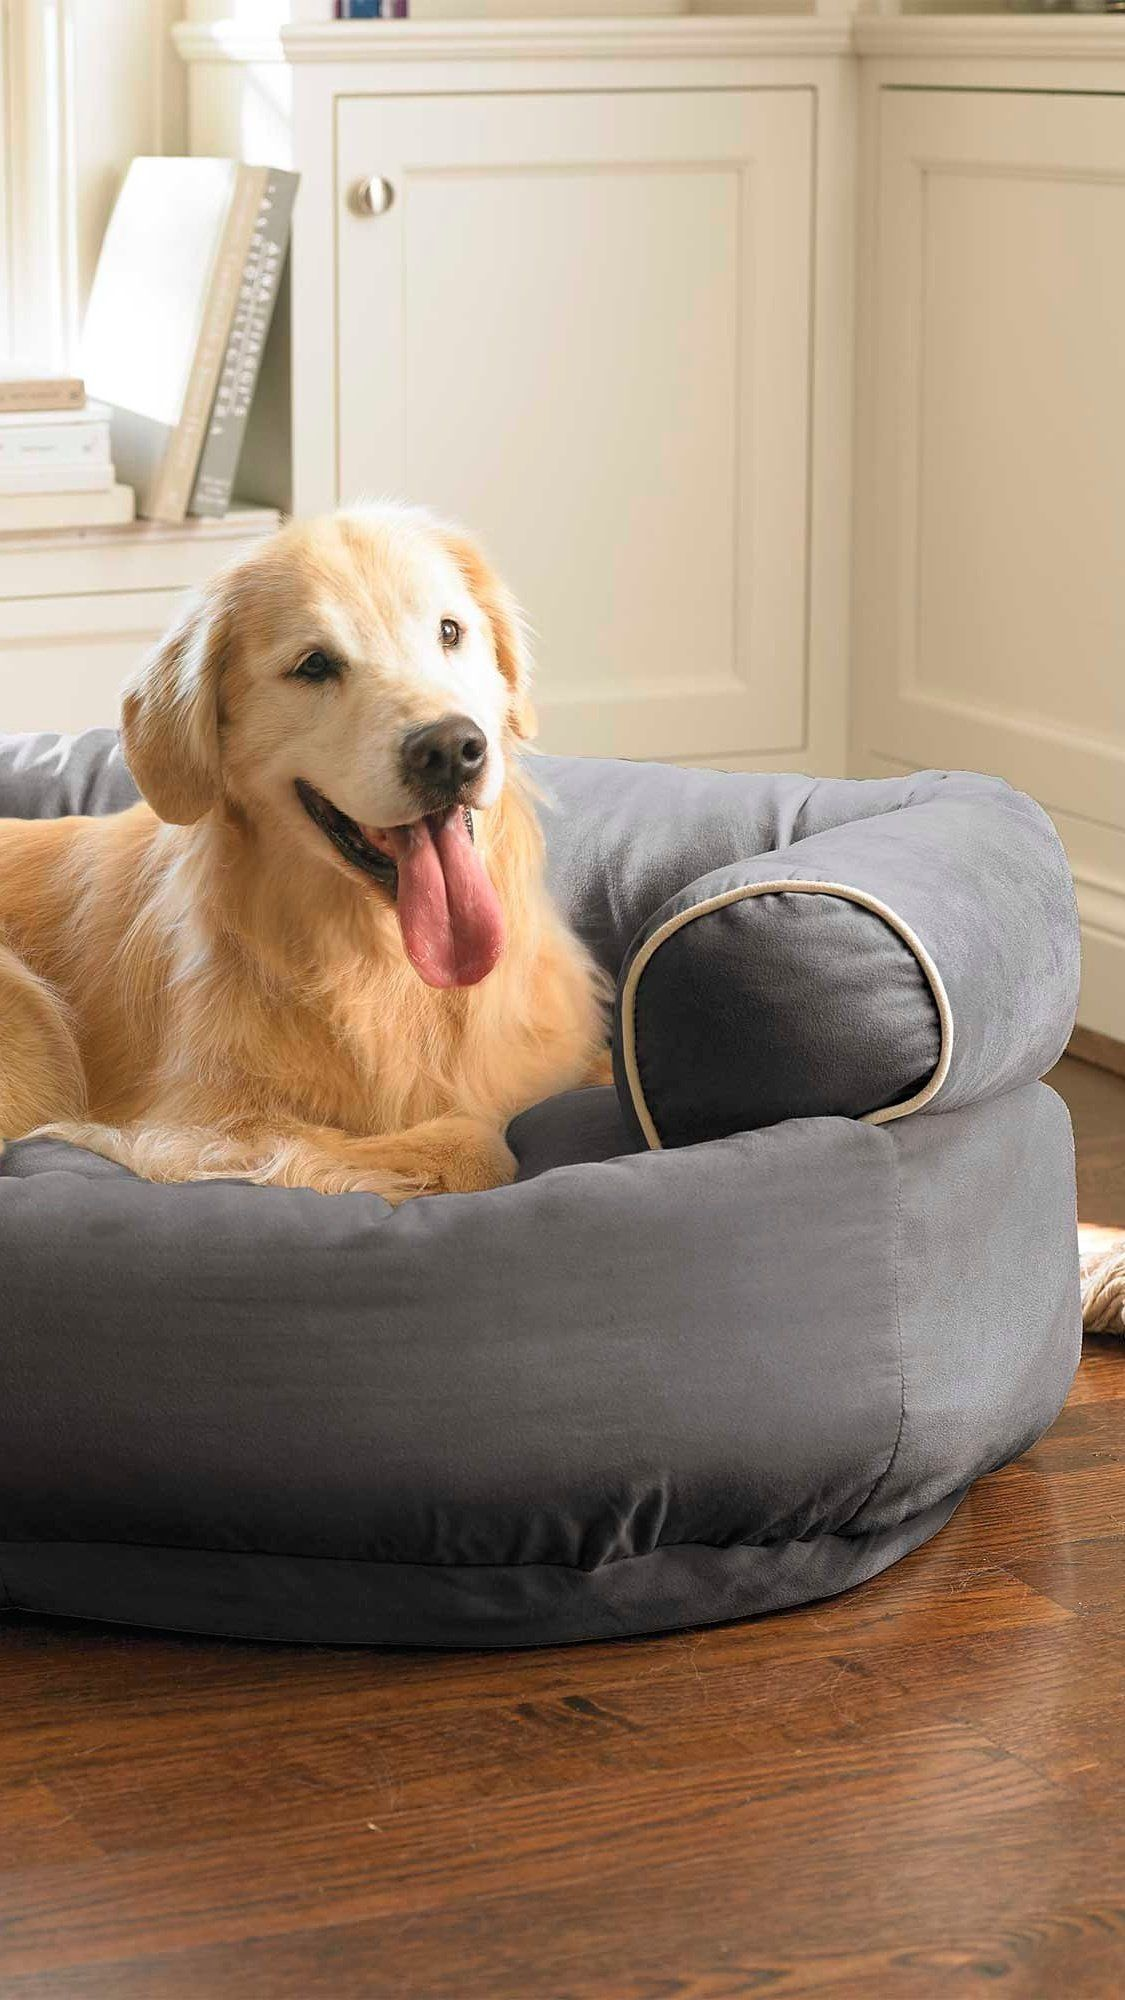 Double Your Pet S Comfort With The Tufted Orthopedic Comfort Of Our Easy To Clean Sofa Dog Bed All The Luxurious Comfort Of Dog Sofa Bed Dog Storage Dog Bed